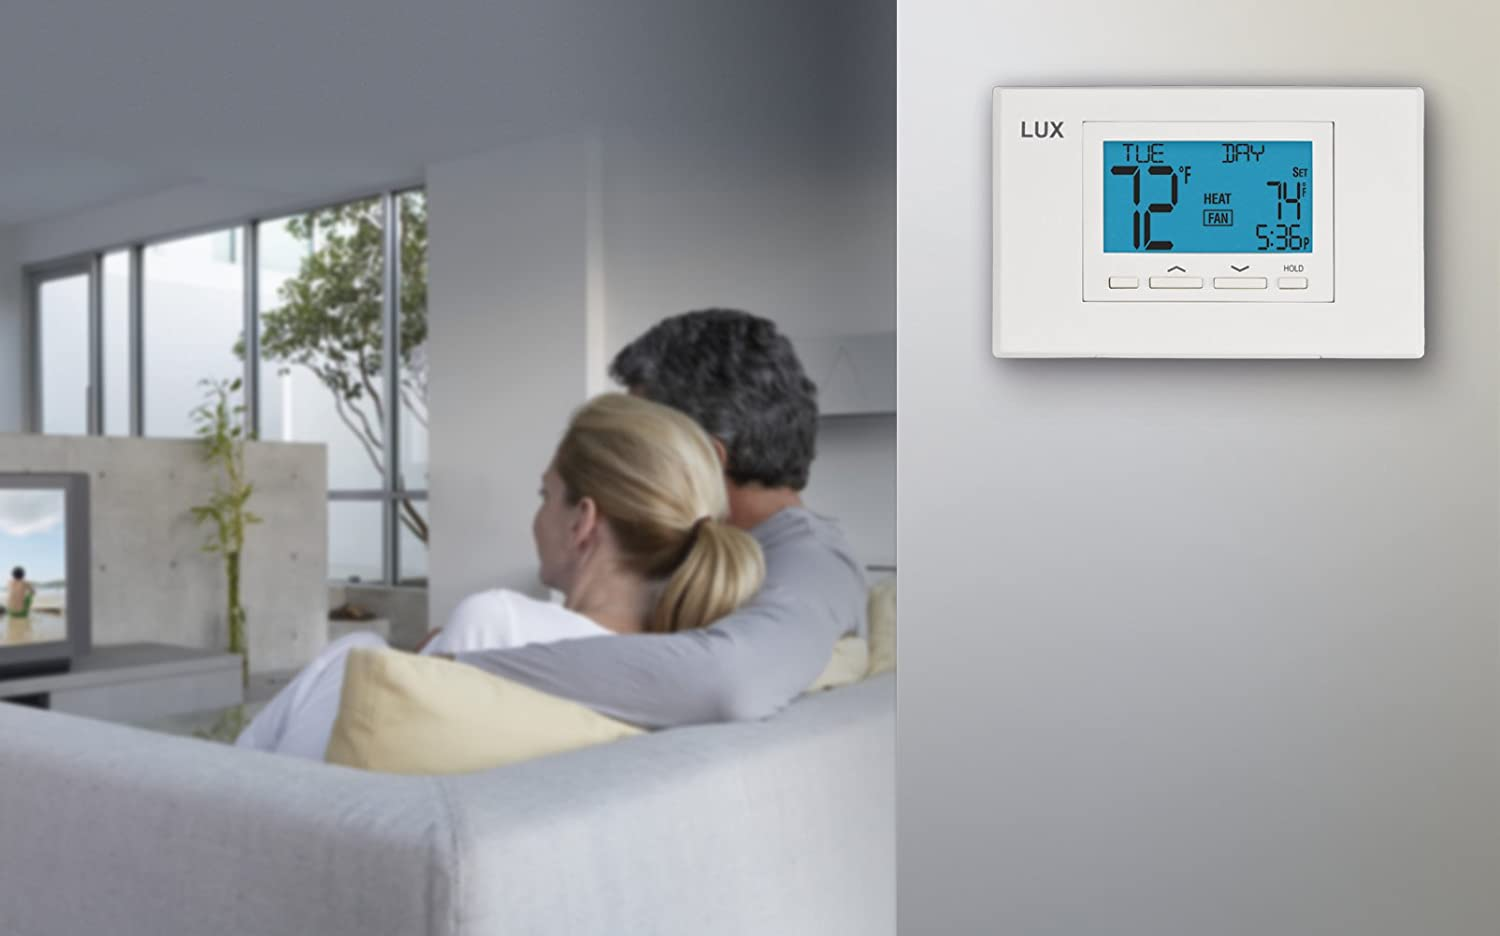 Lux 1500 Thermostat Wiring Diagram Products Tx9100u Programmable Household Thermostats